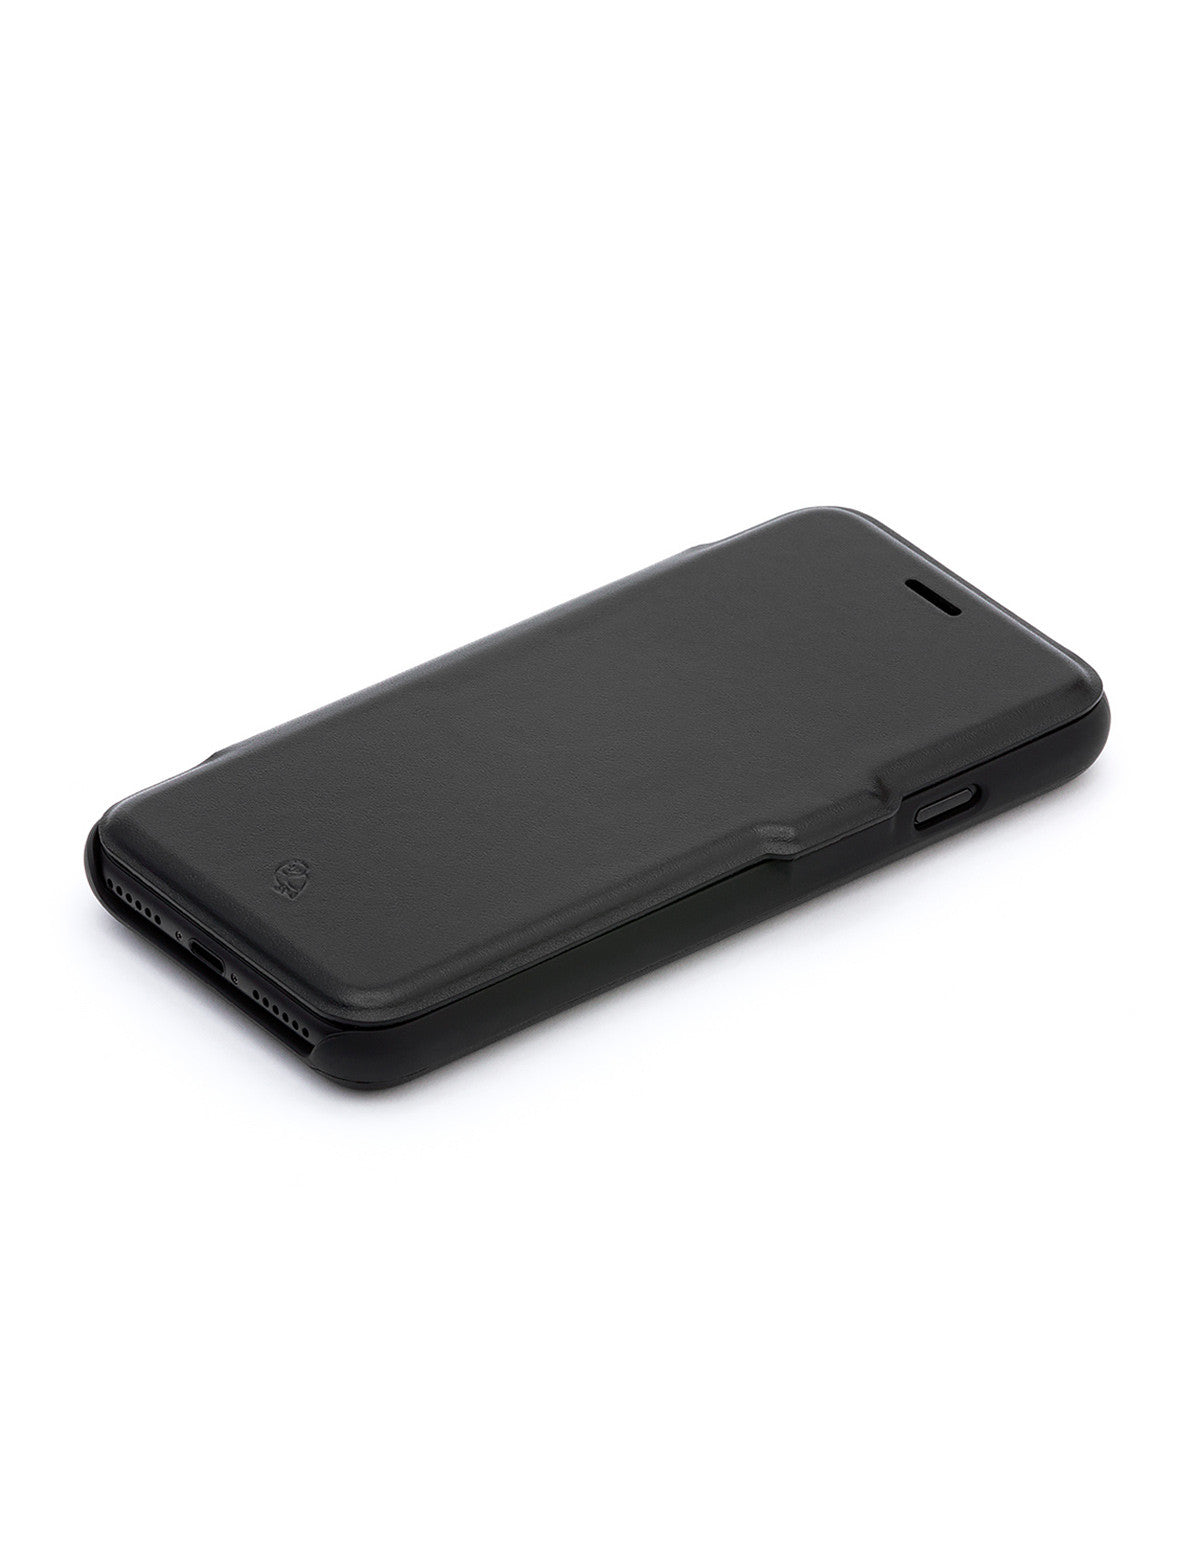 Bellroy Phone Wallet i7 Black - Still Life - 2